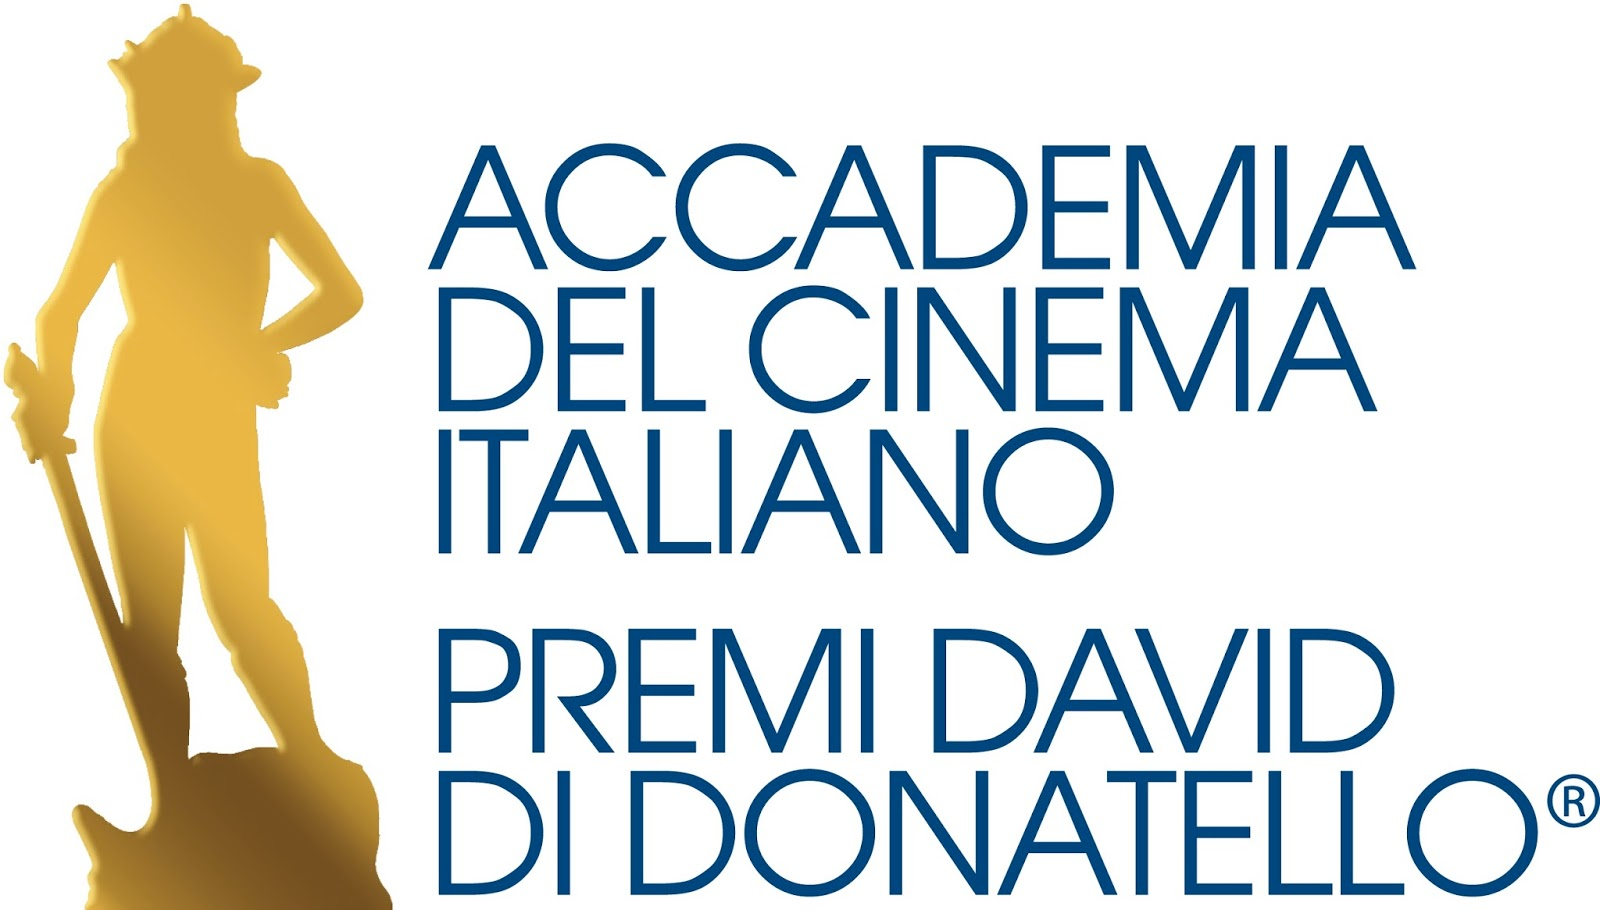 David di Donatello Awards